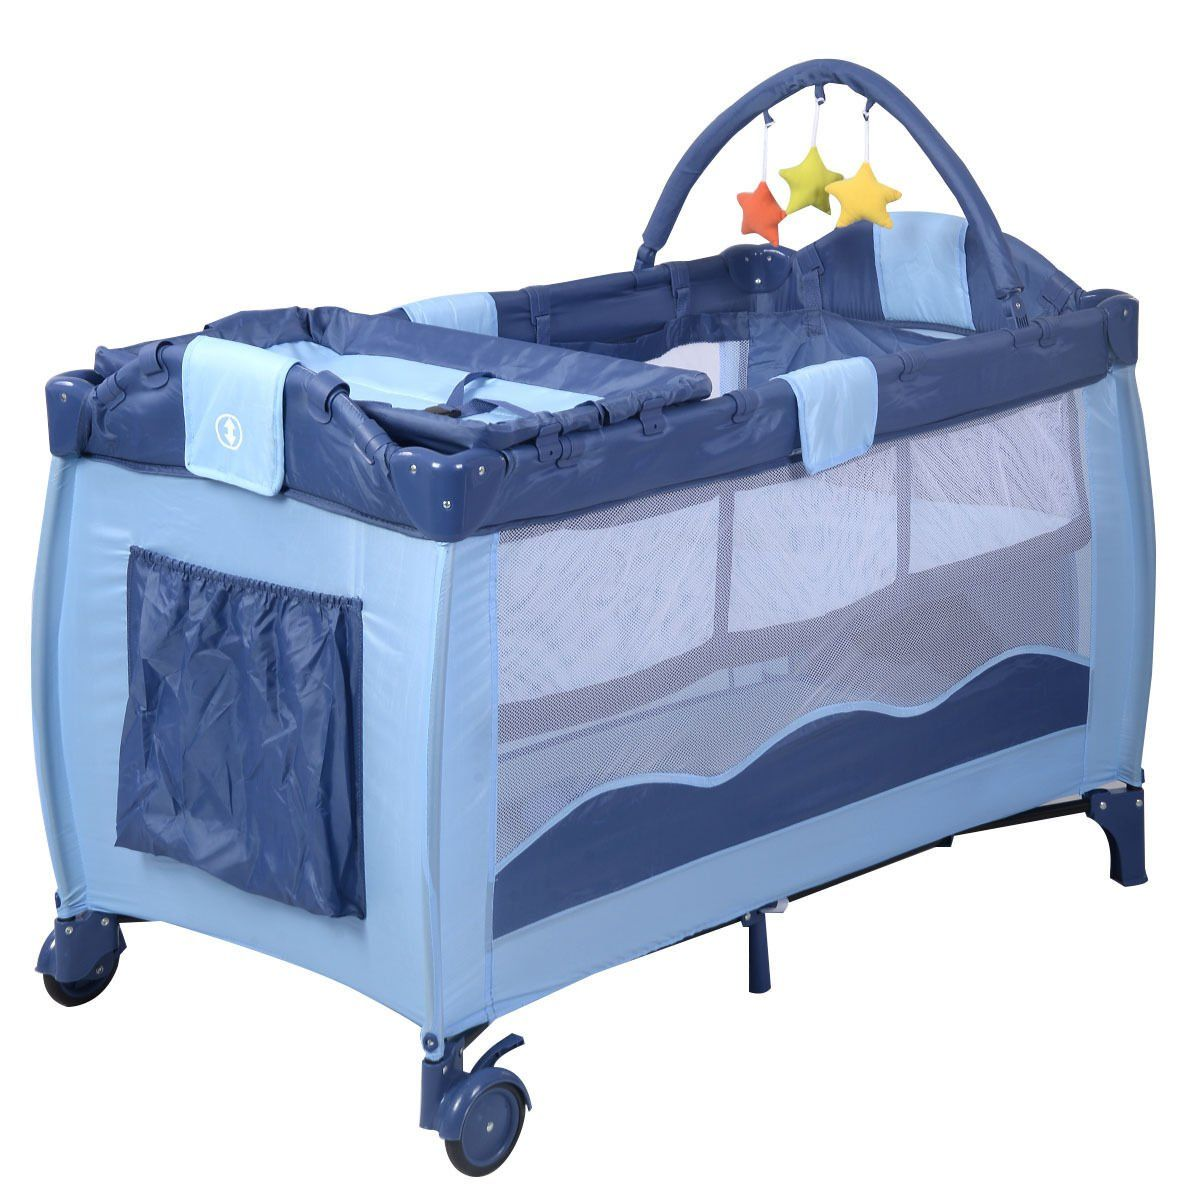 Baby crib playard - Baby Crib Playpen Playard Pack Travel Infant Bassinet Bed Foldable Blue Wanna Go